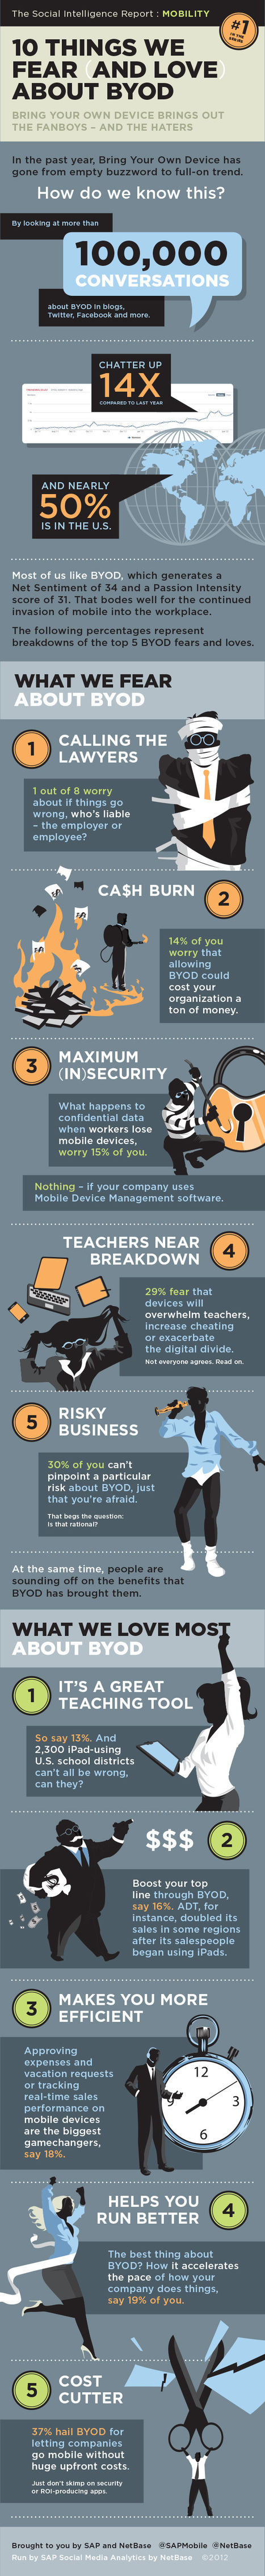 Infographic: The Ten Things We Fear (And Love) About BYOD | omnia mea mecum fero | Scoop.it